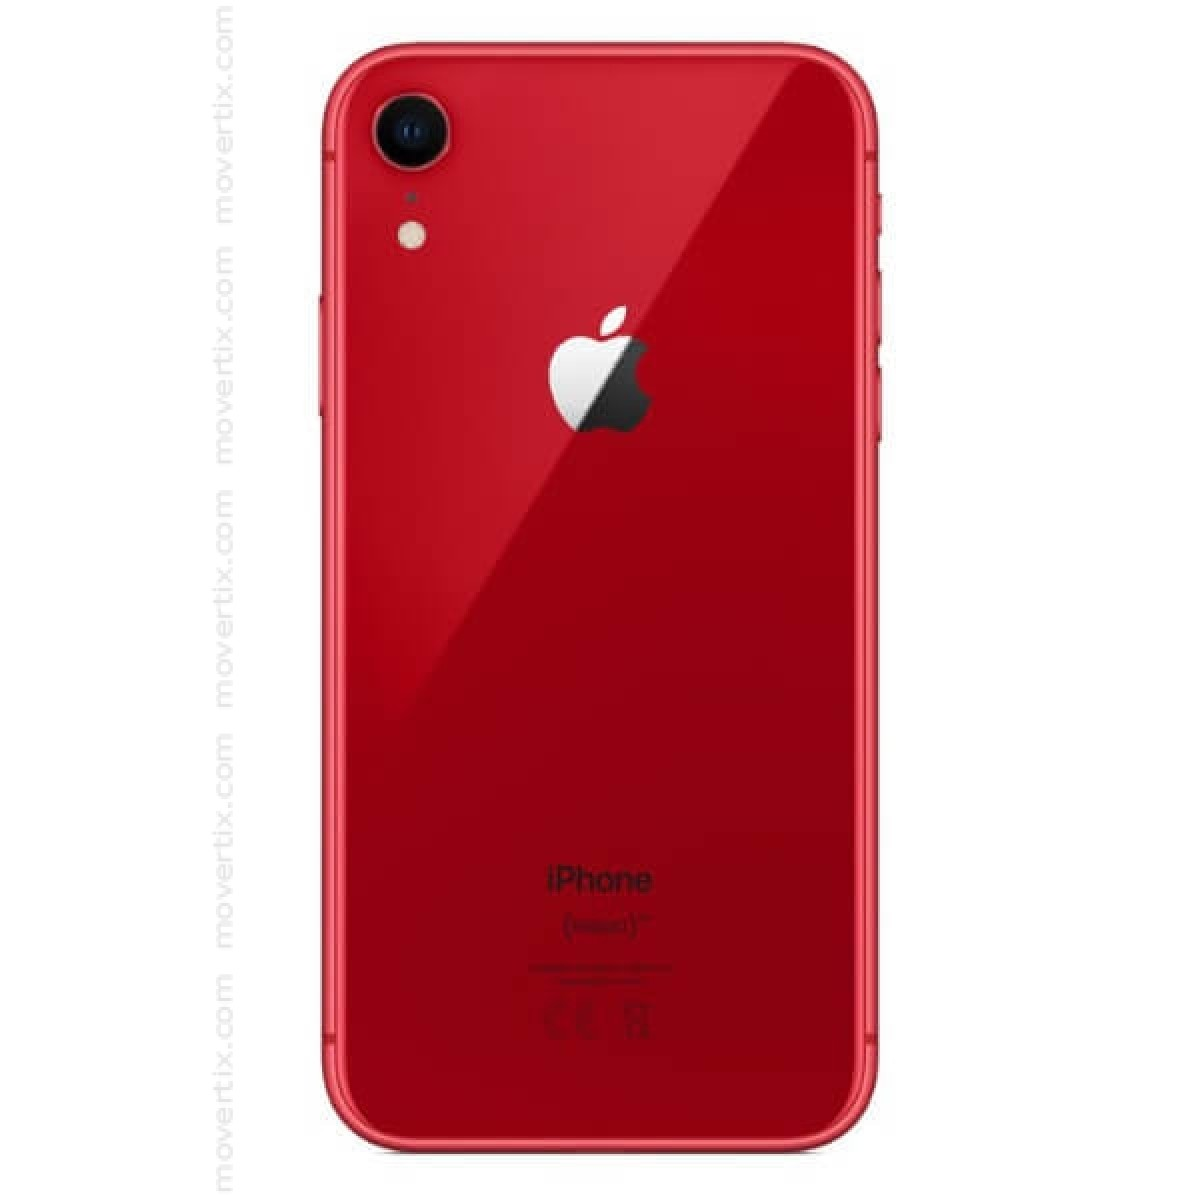 Moviles Libres 5 Pulgadas Apple Iphone Xr En Rojo De 64gb (0190198771186) | Movertix